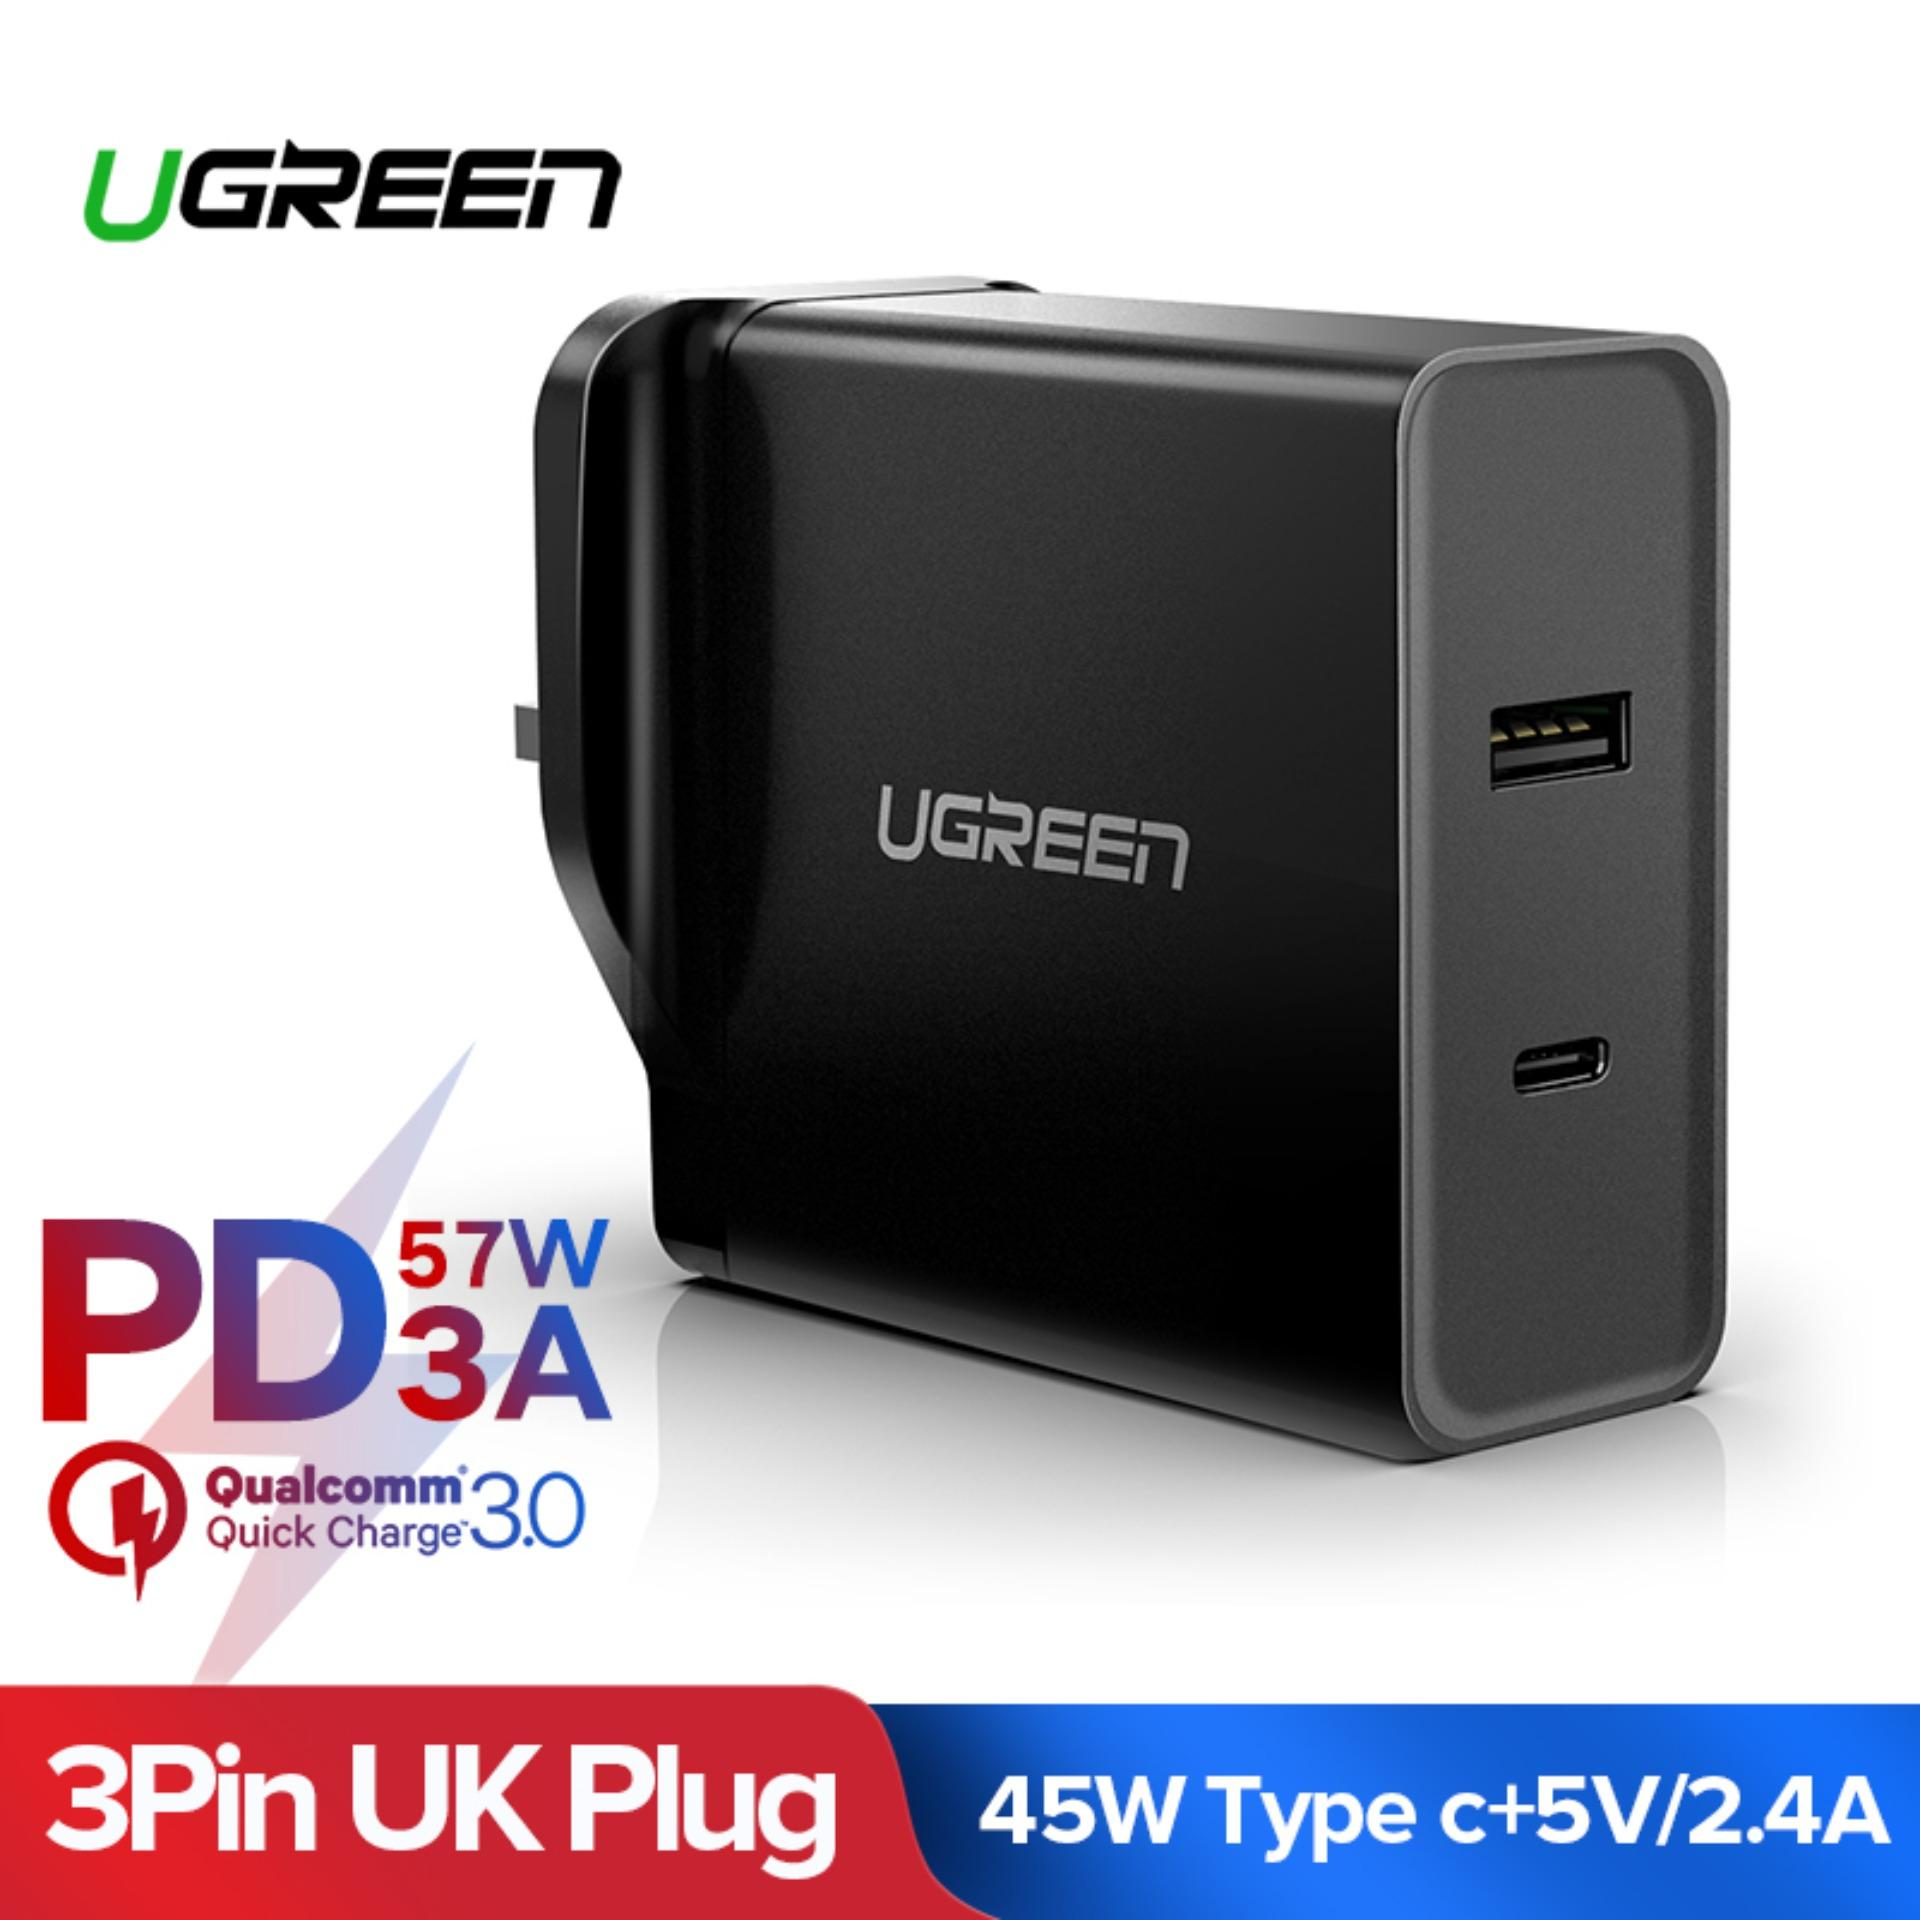 Ugreen Usb C Pd Charger, 45w Usb C Wall Charger With 5v 2.4a Usb Charging Port For Nintendo Switch/macbook/iphone X/samsung Note 9/google Pixel/hp Envy Etc By Ugreen Flagship Store.